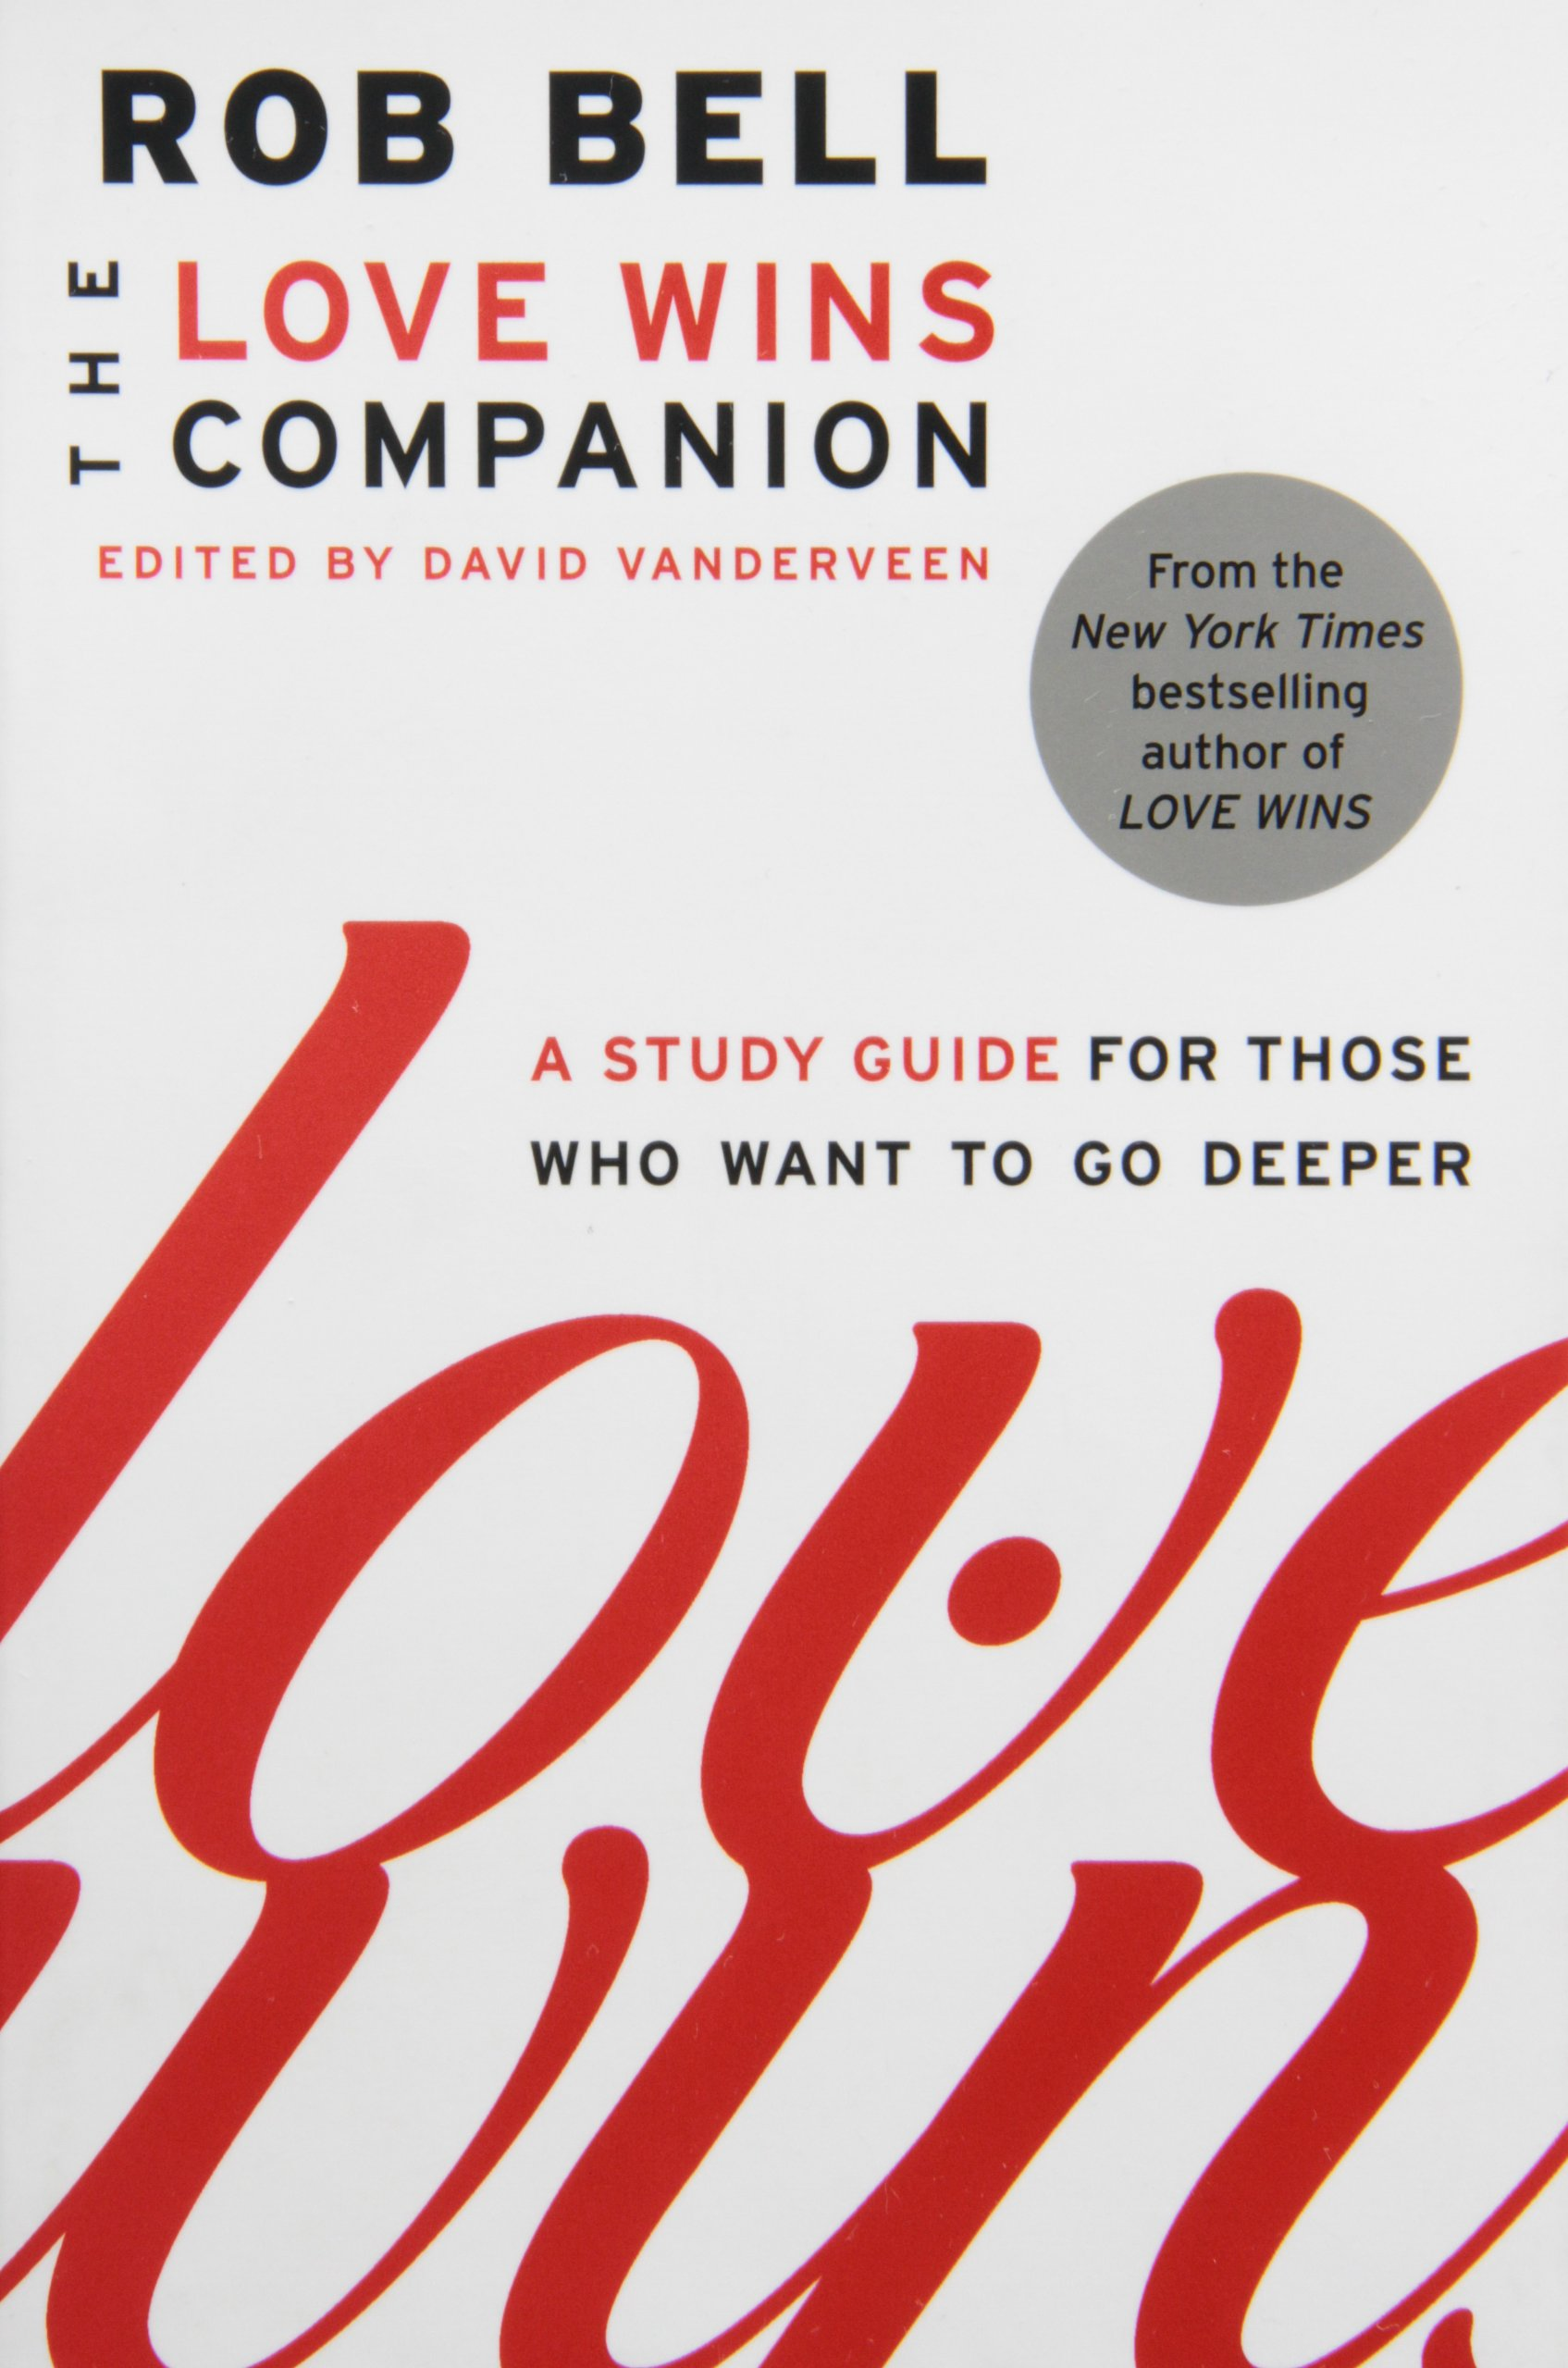 - David is the editor of the official companion book to Rob Bell's bestselling Love Wins:The Love Wins Companion A Study Guide for Those Who Want to Go Deeper